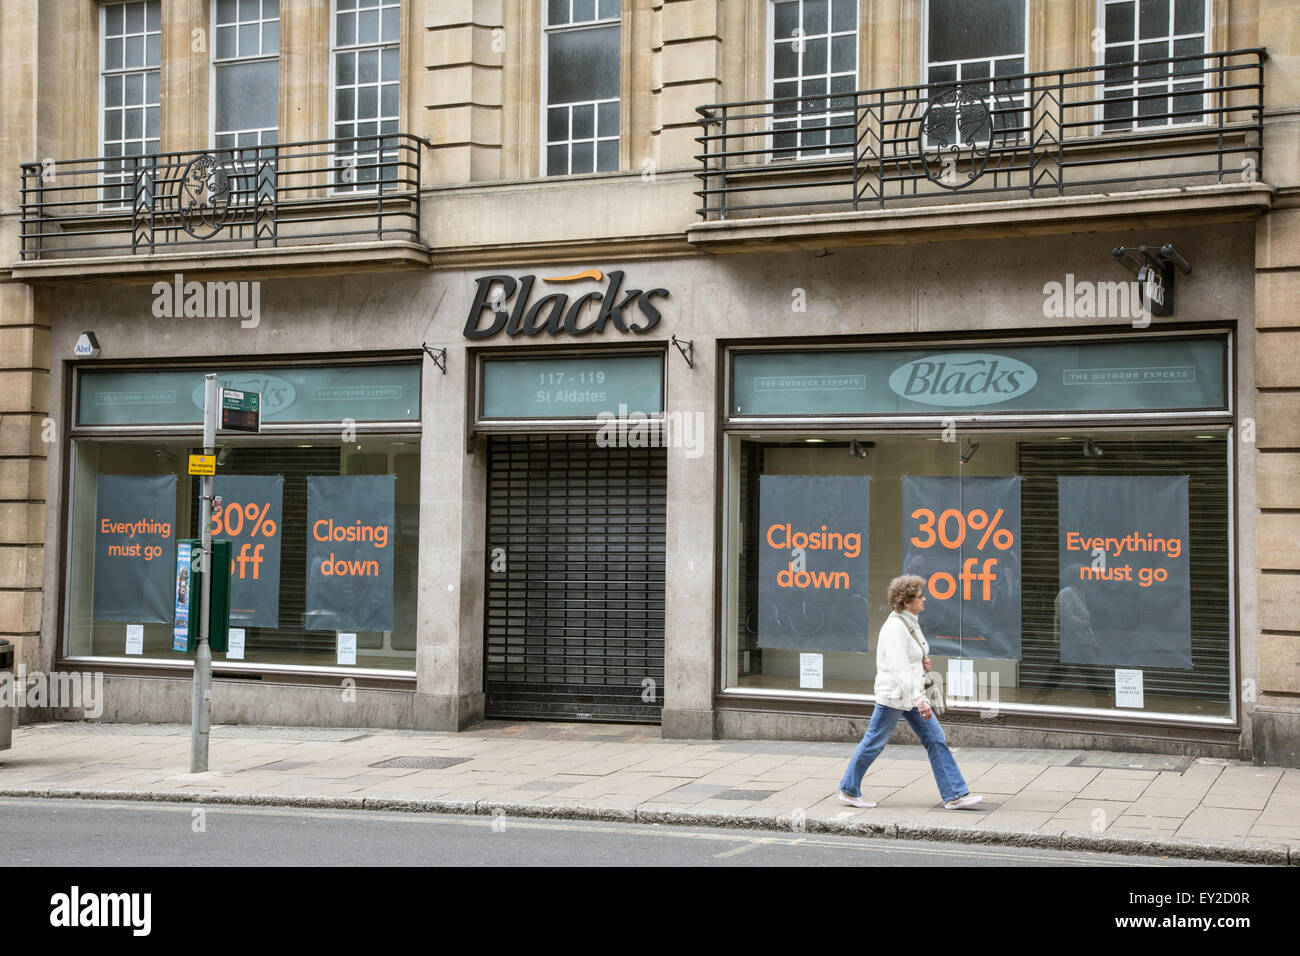 A closing down sale at Blacks outdoor shop, Oxford, Oxfordshire, England, UK - Stock Image